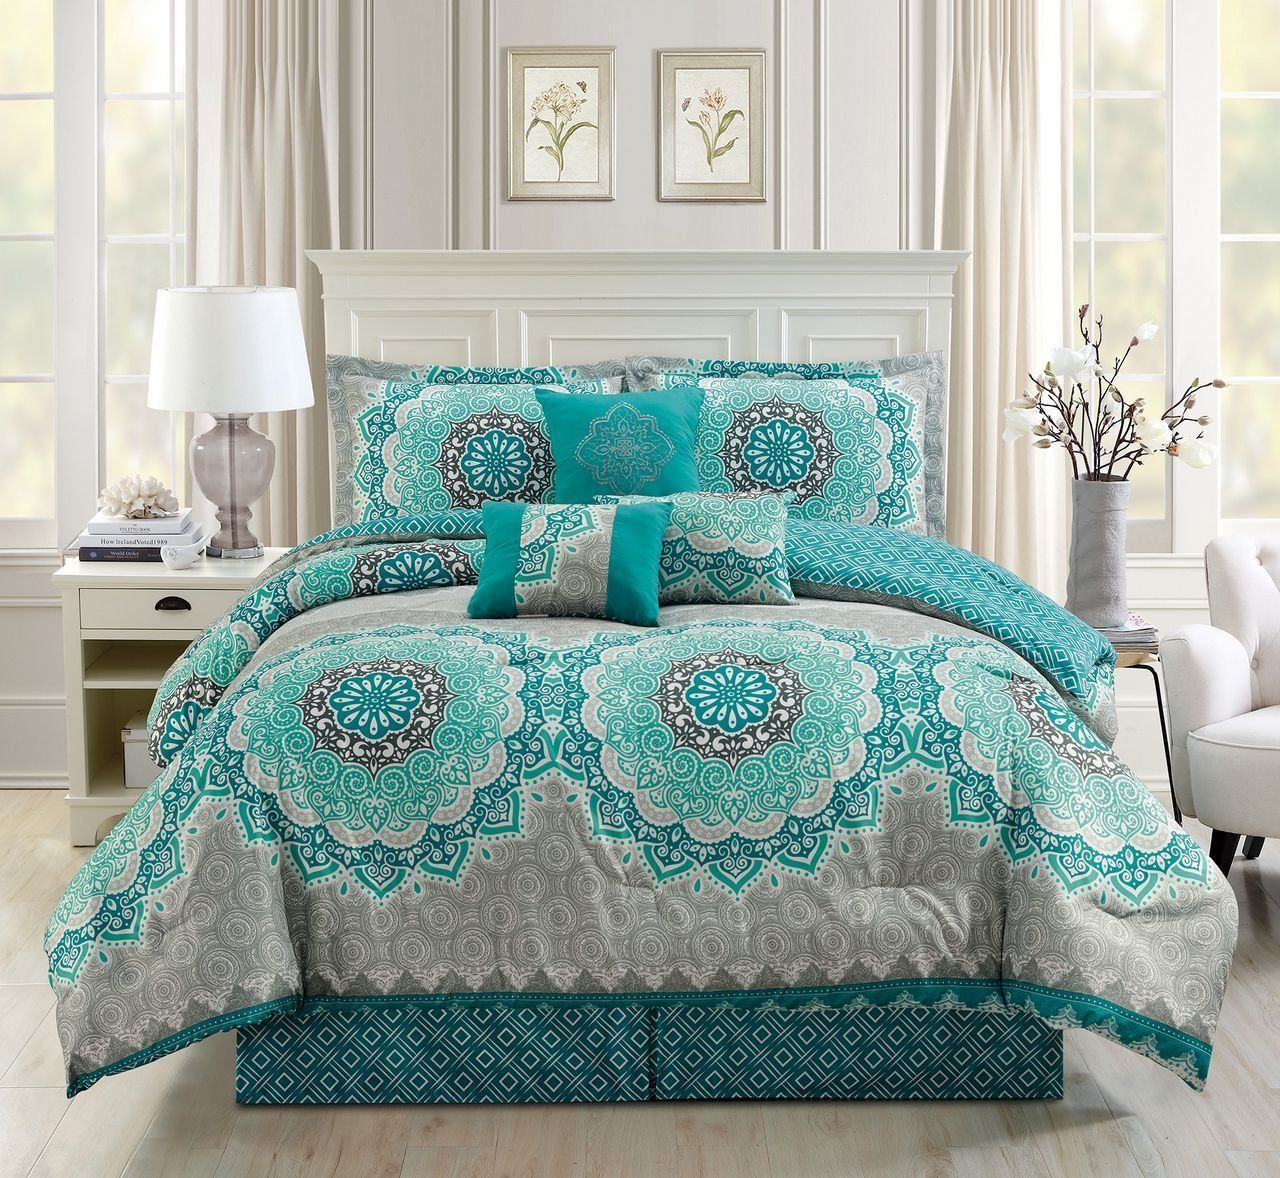 7 Piece Medallion Floral Teal Gray Comforter Set Bedroom